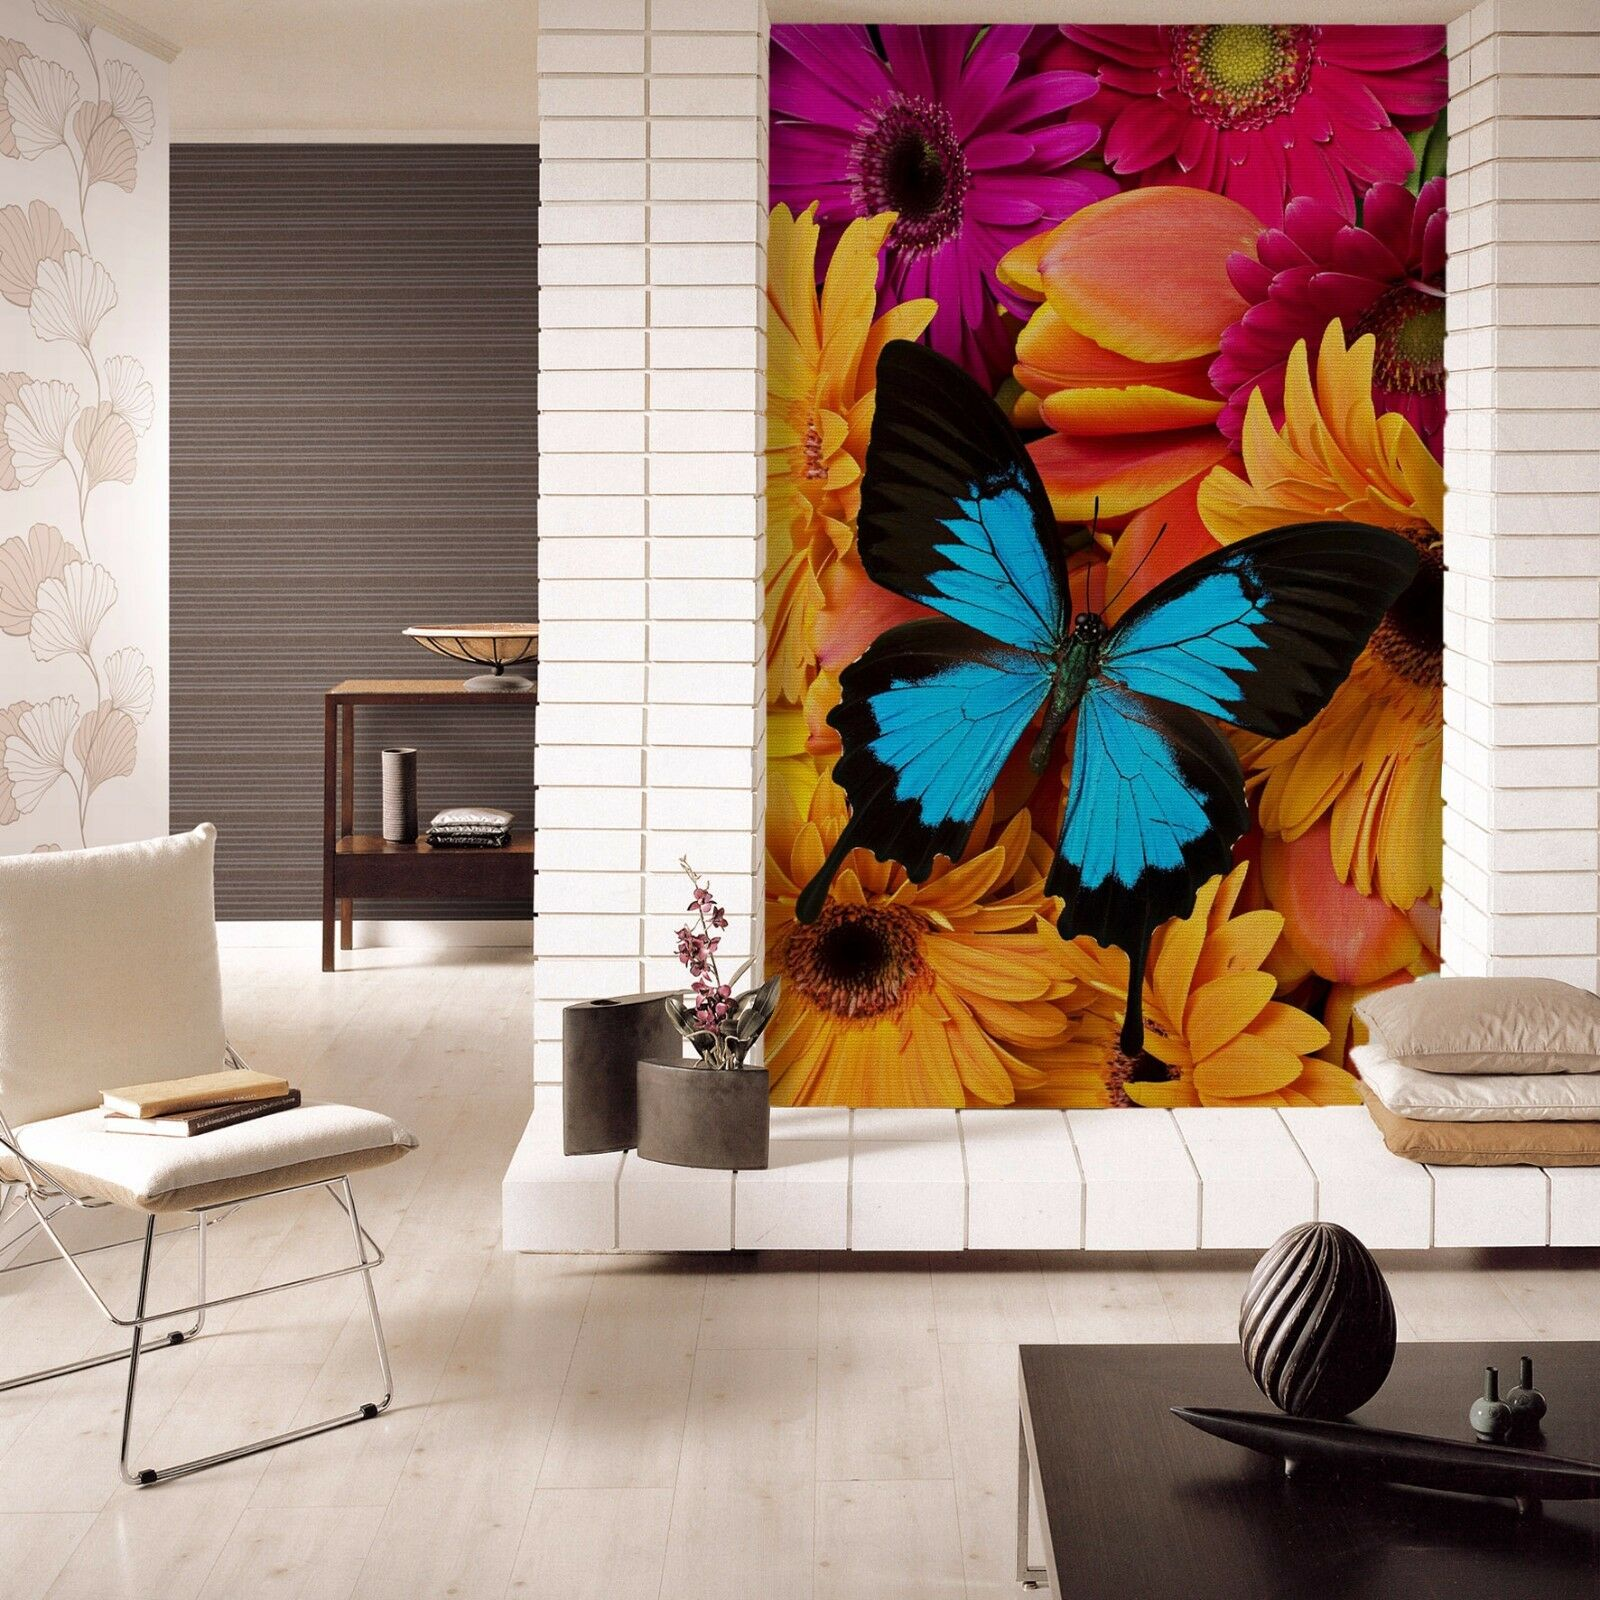 3D Flowers Butterfly 01 WallPaper Murals Wall Print Decal Wall Deco AJ WALLPAPER